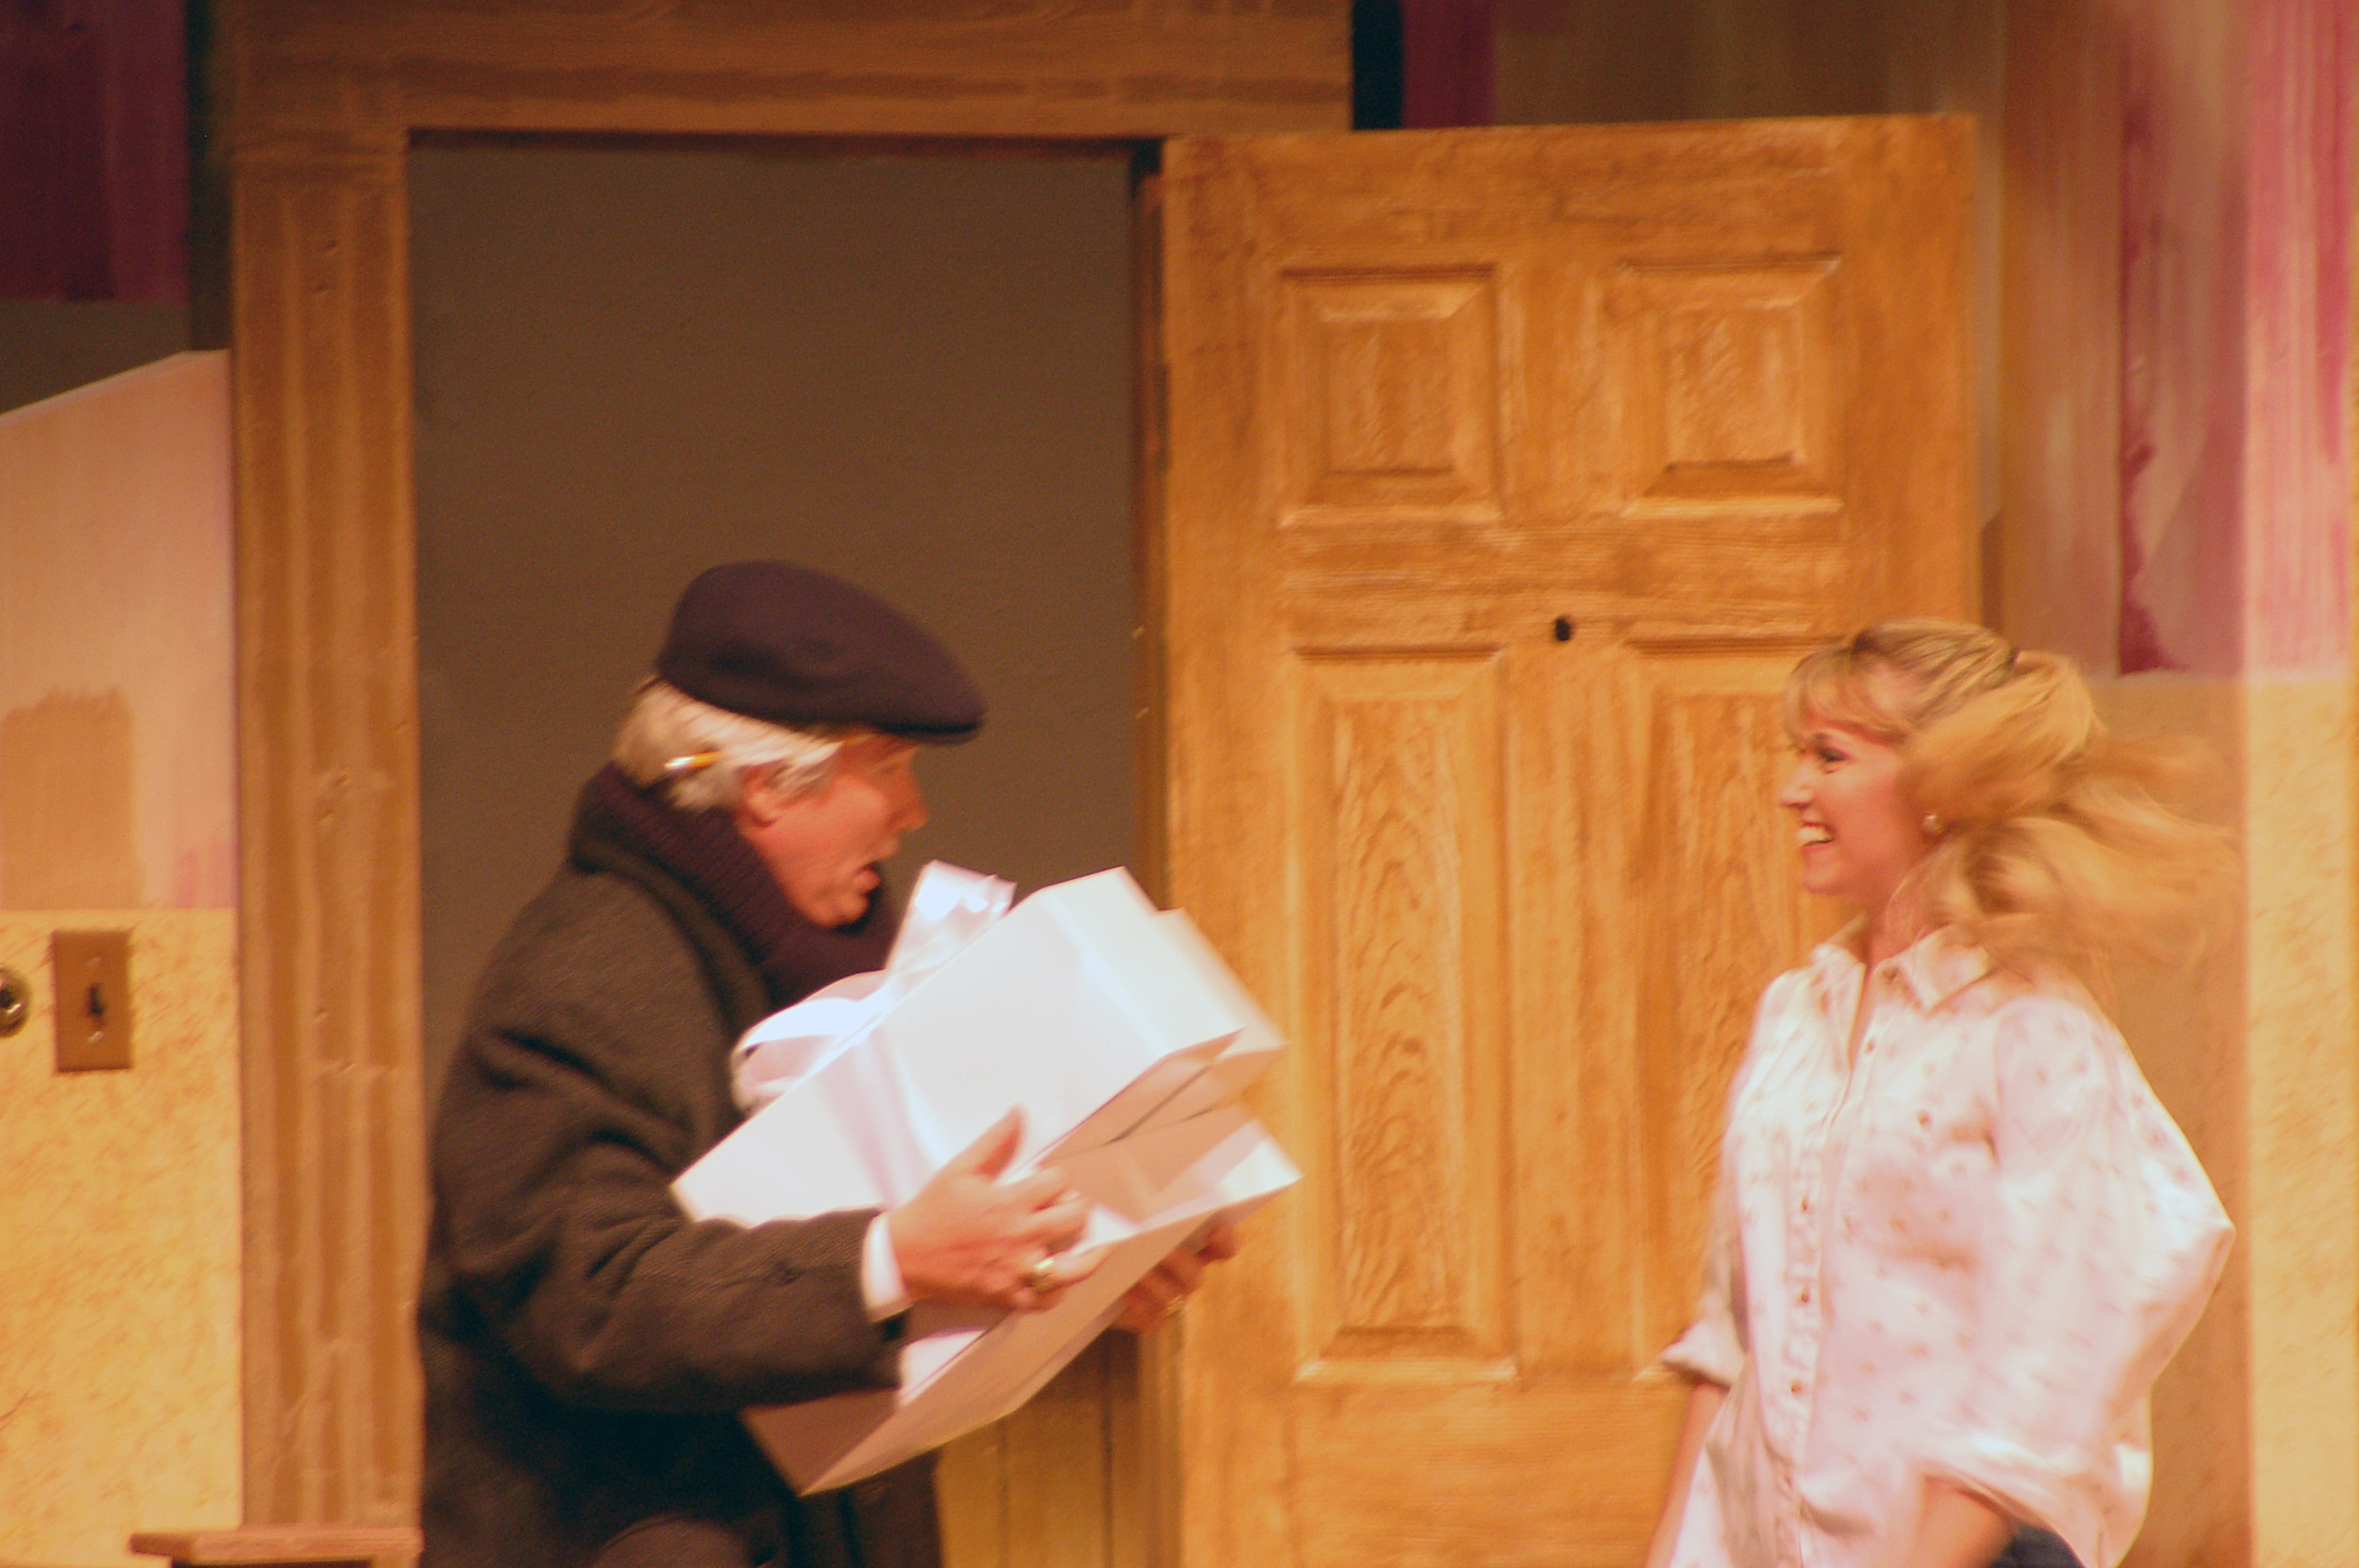 The out of breath delivery man from Barefoot in the Park